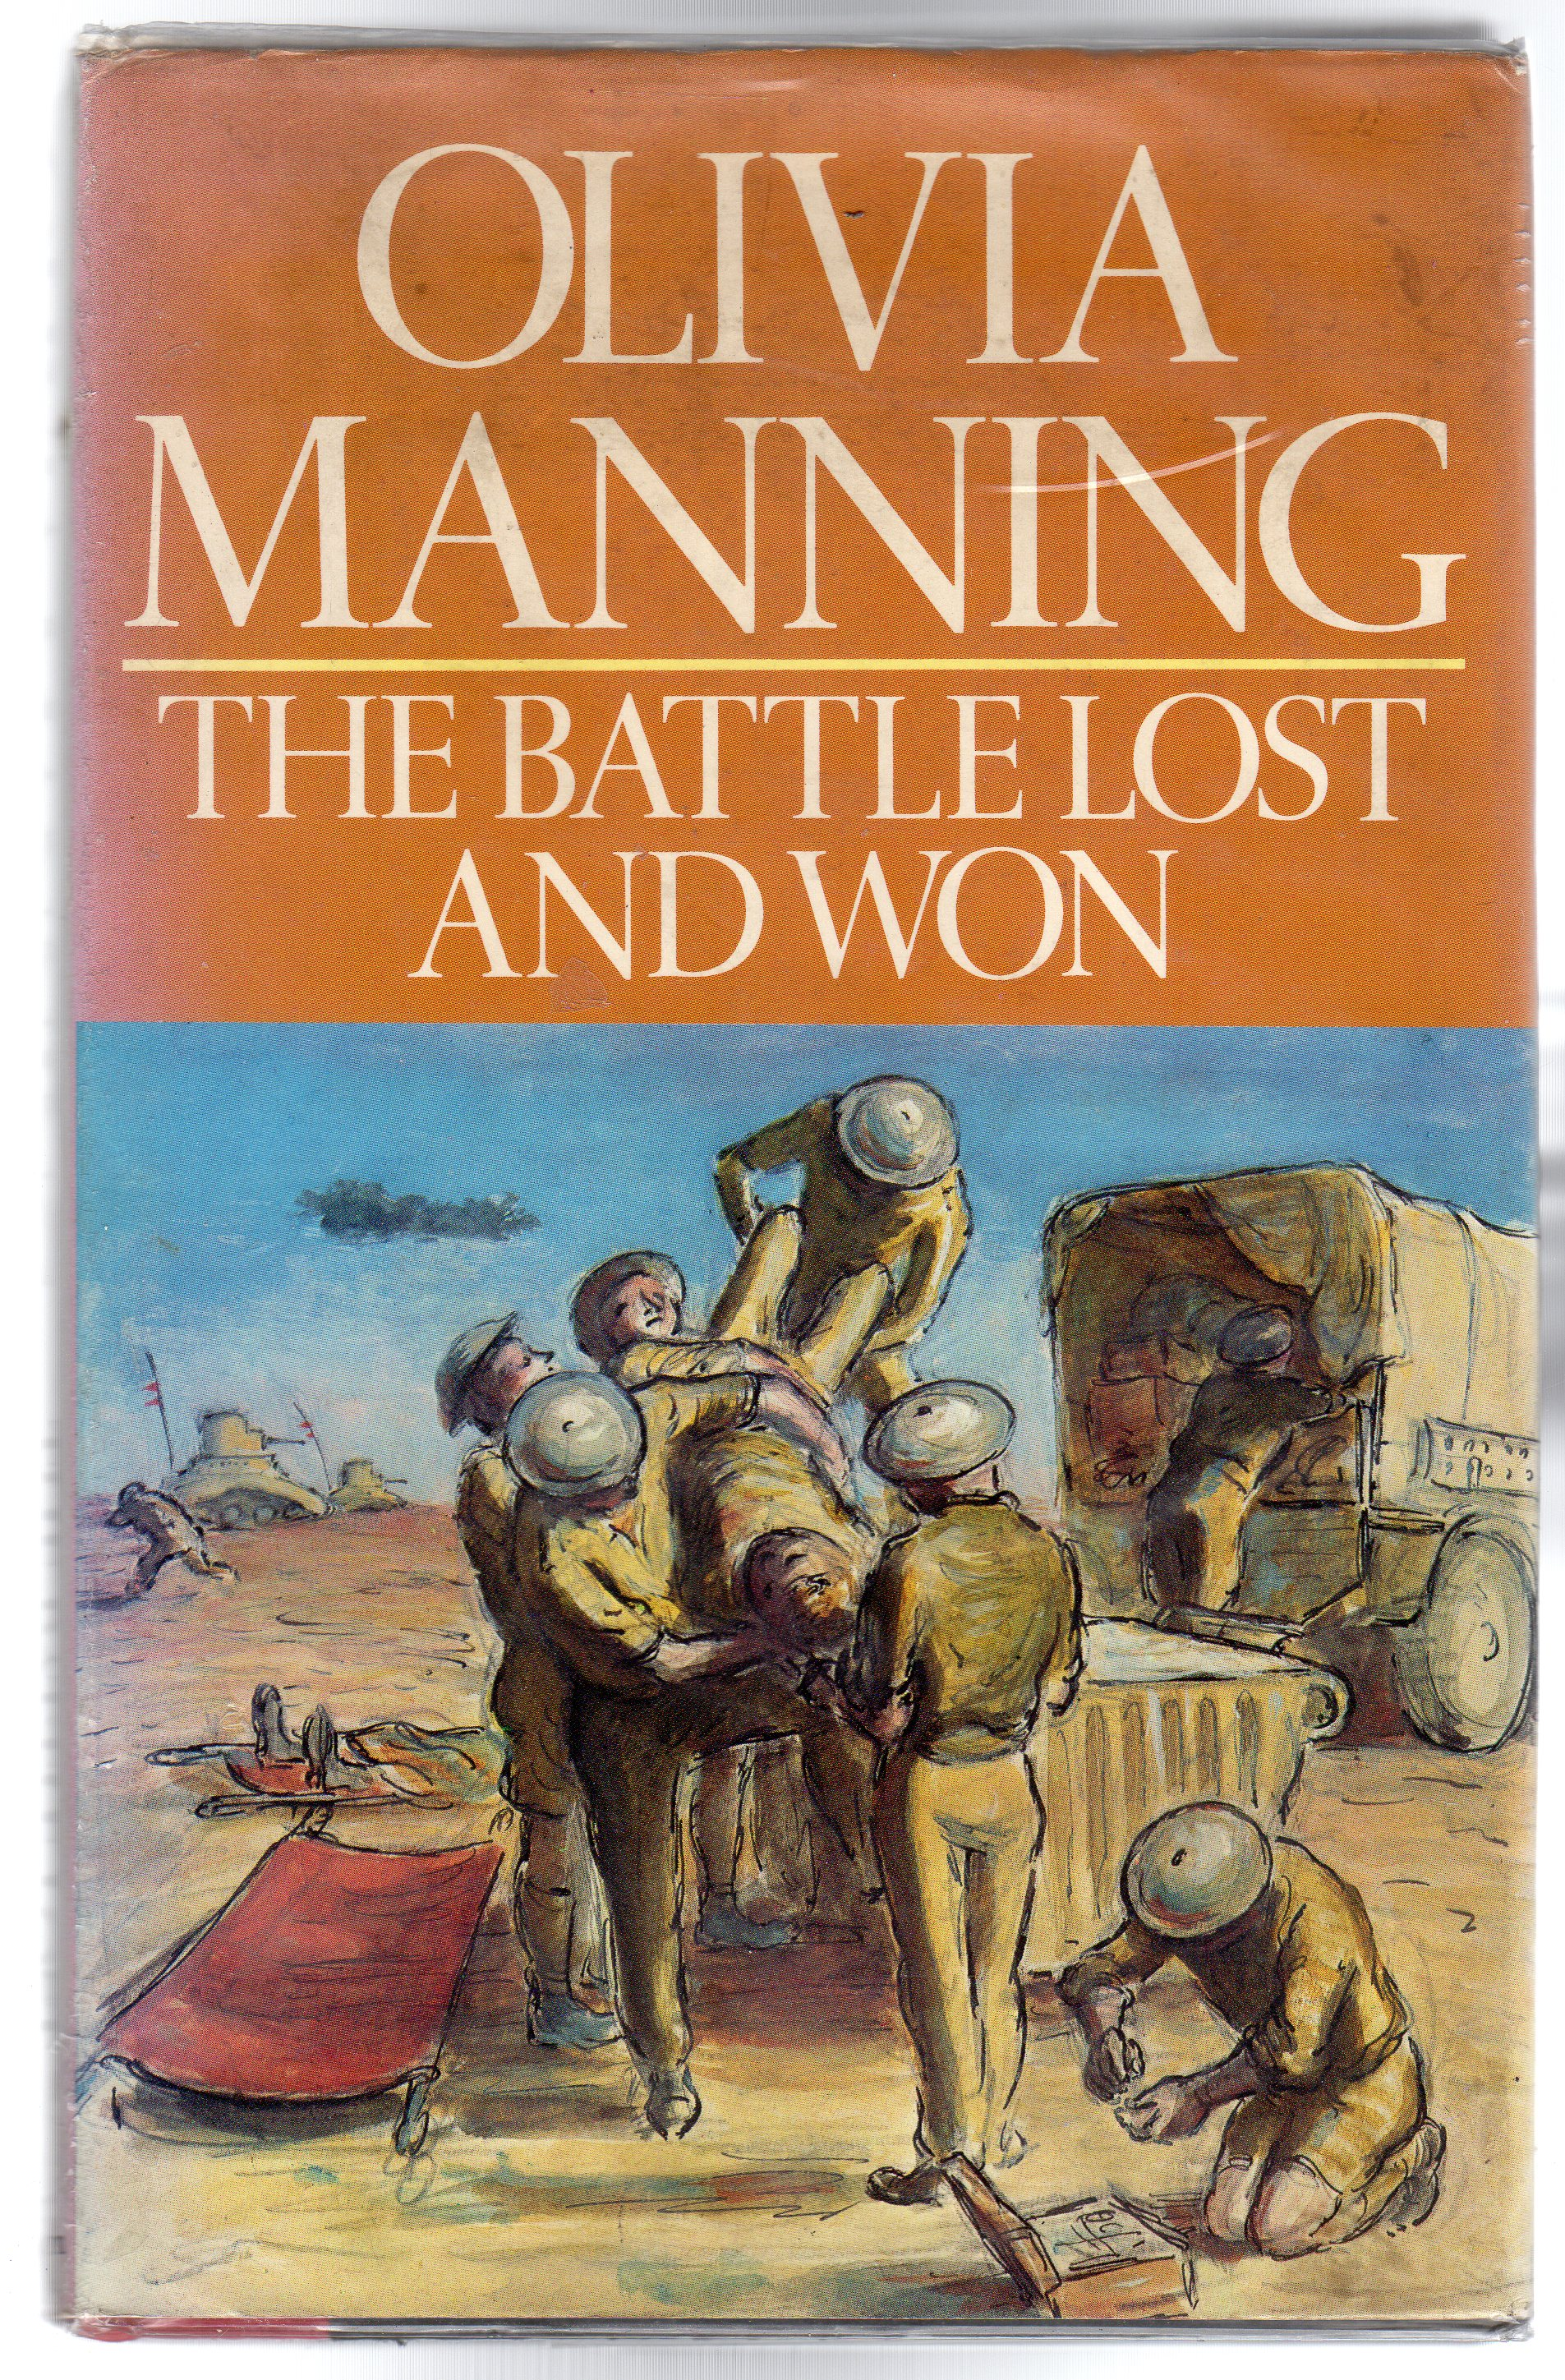 Image for The Battle Lost and Won - SIGNED COPY